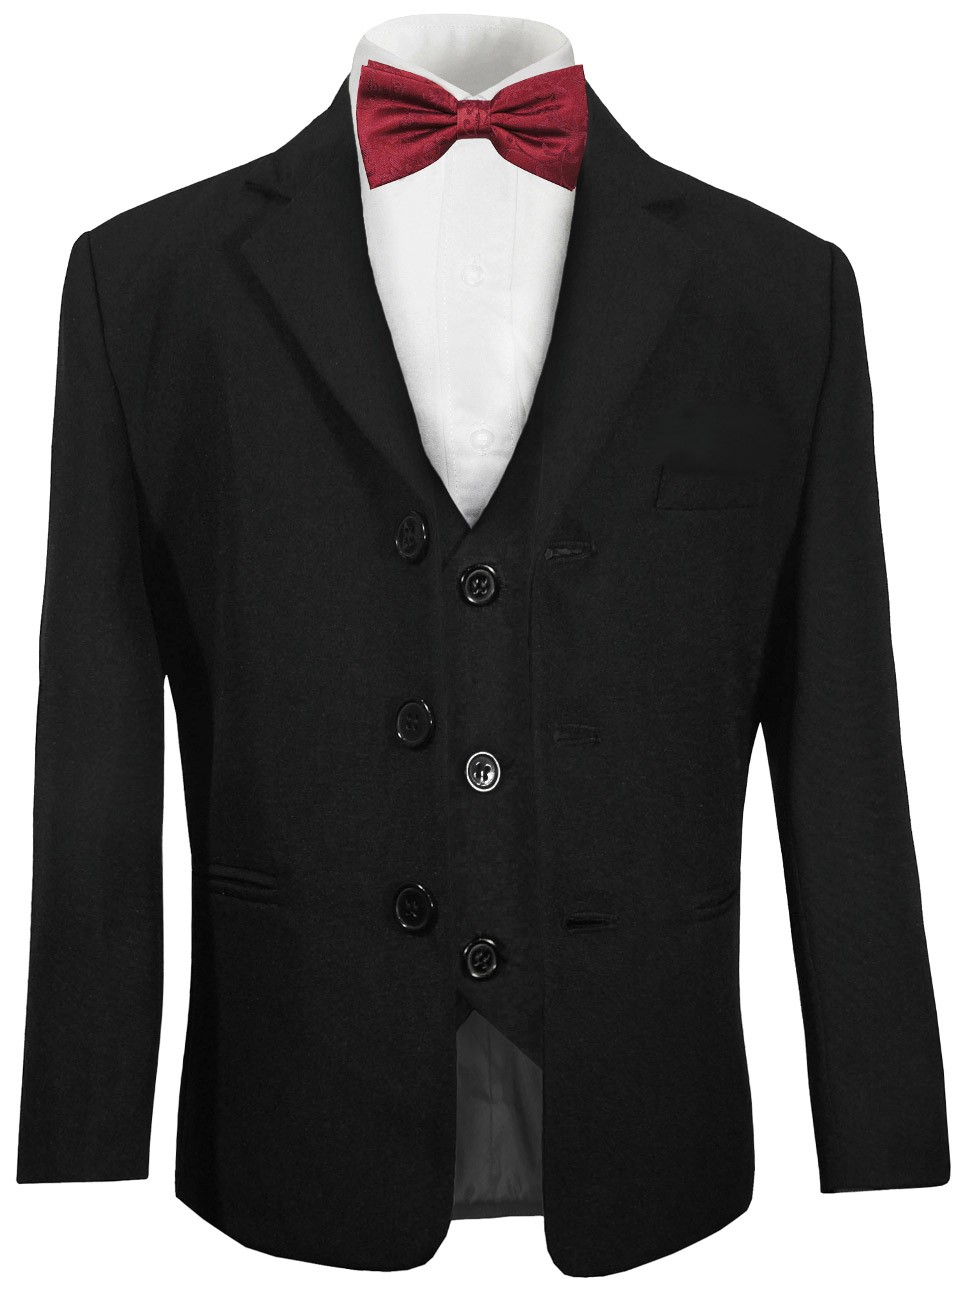 Boys suit black and bow tie burgundy red